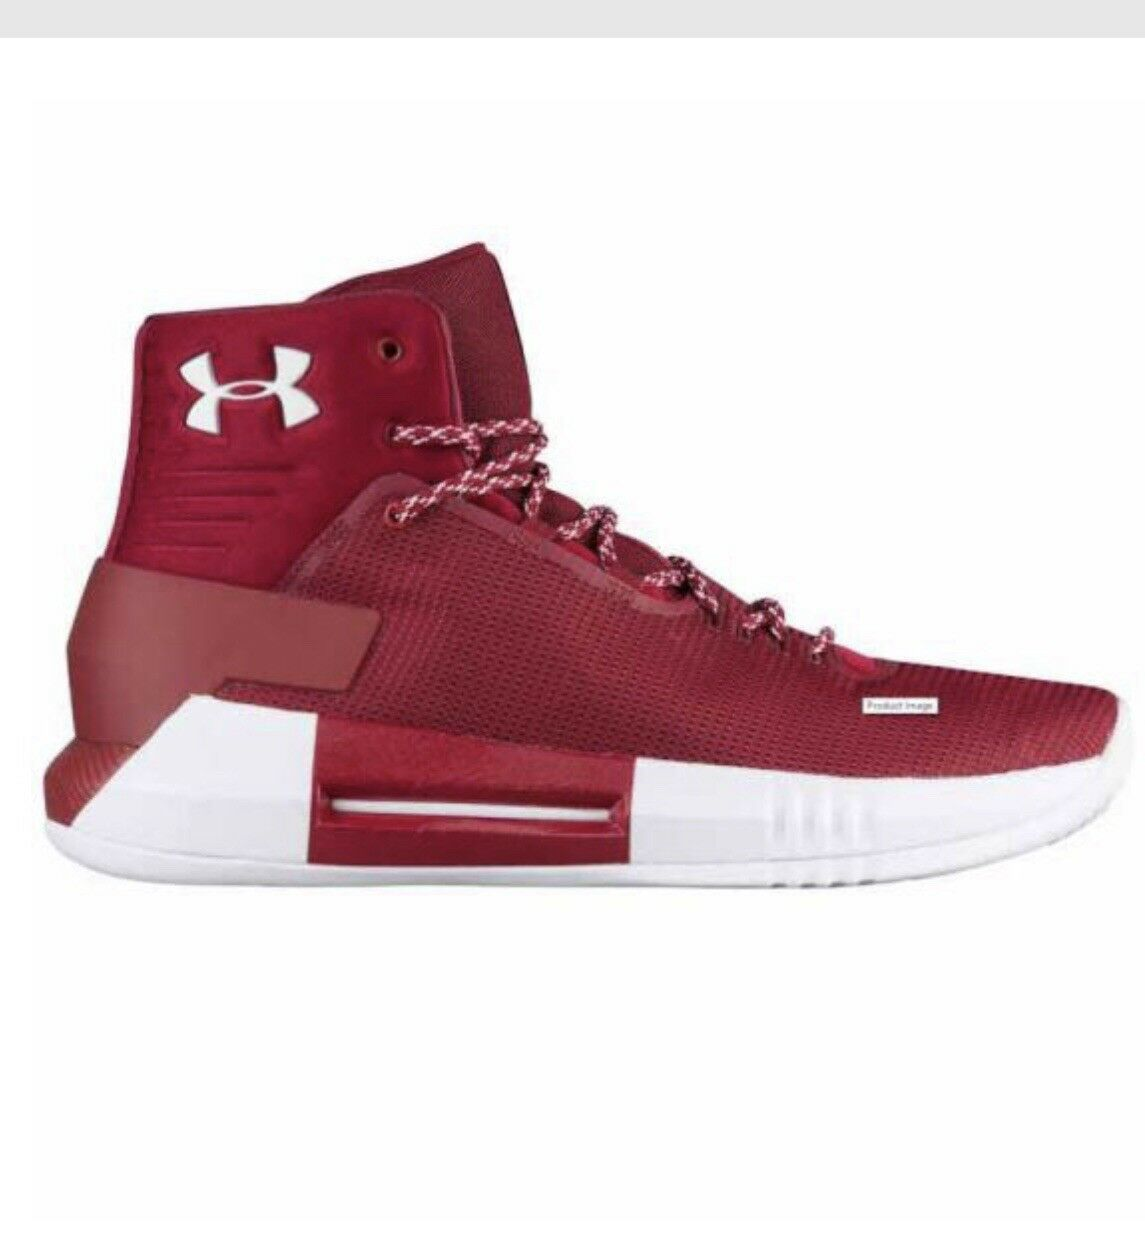 Under Armour Drive 4 Cardinal Uomo's Sz US 11 NEW with Box Red S. Curry SOLD OUT!